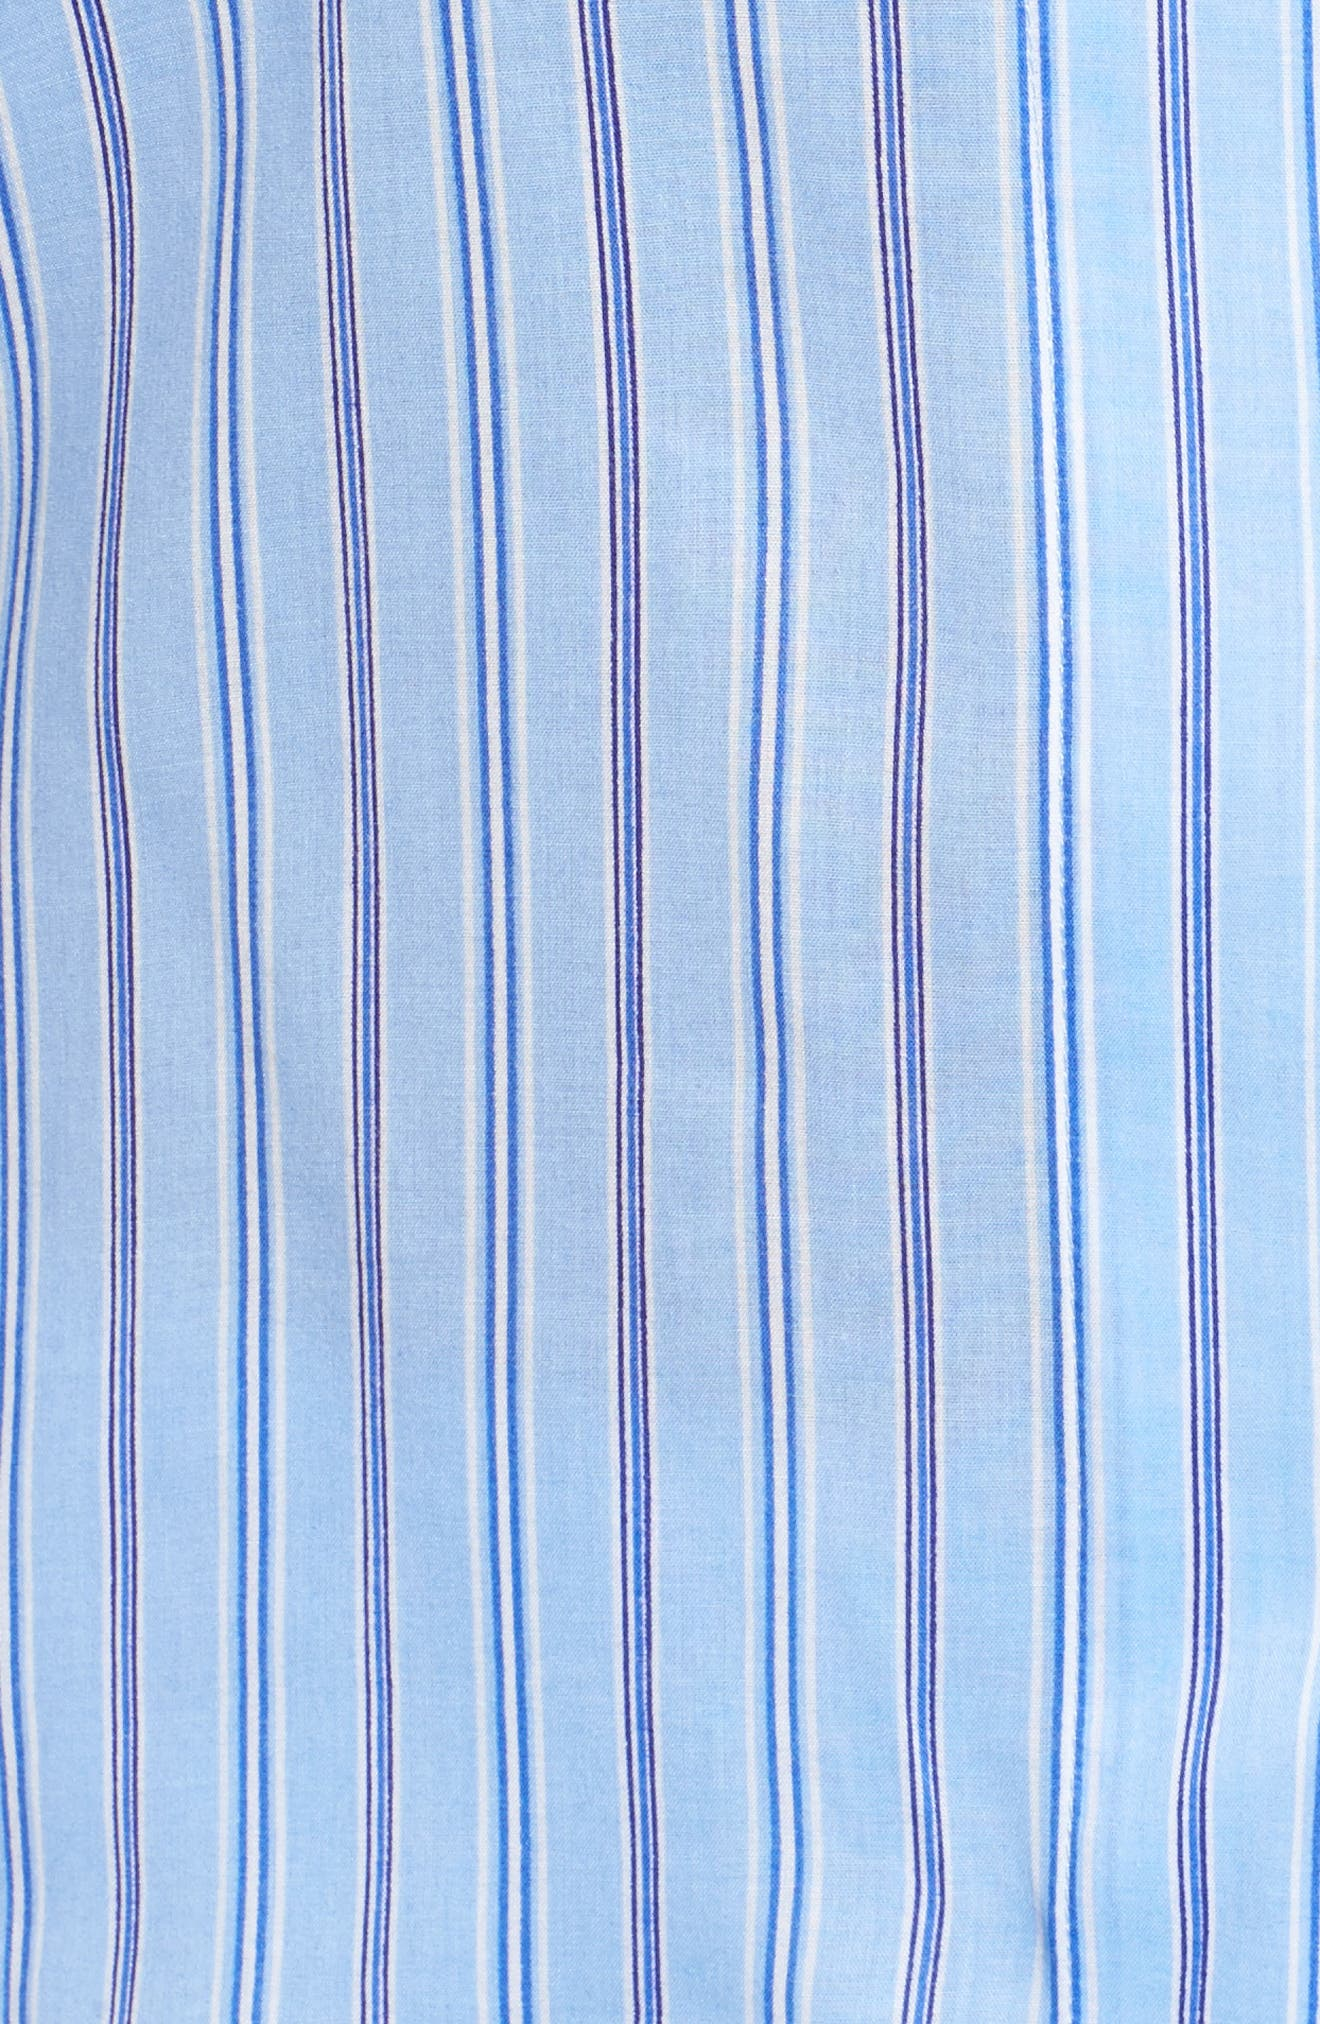 Capri Pajamas,                             Alternate thumbnail 5, color,                             486